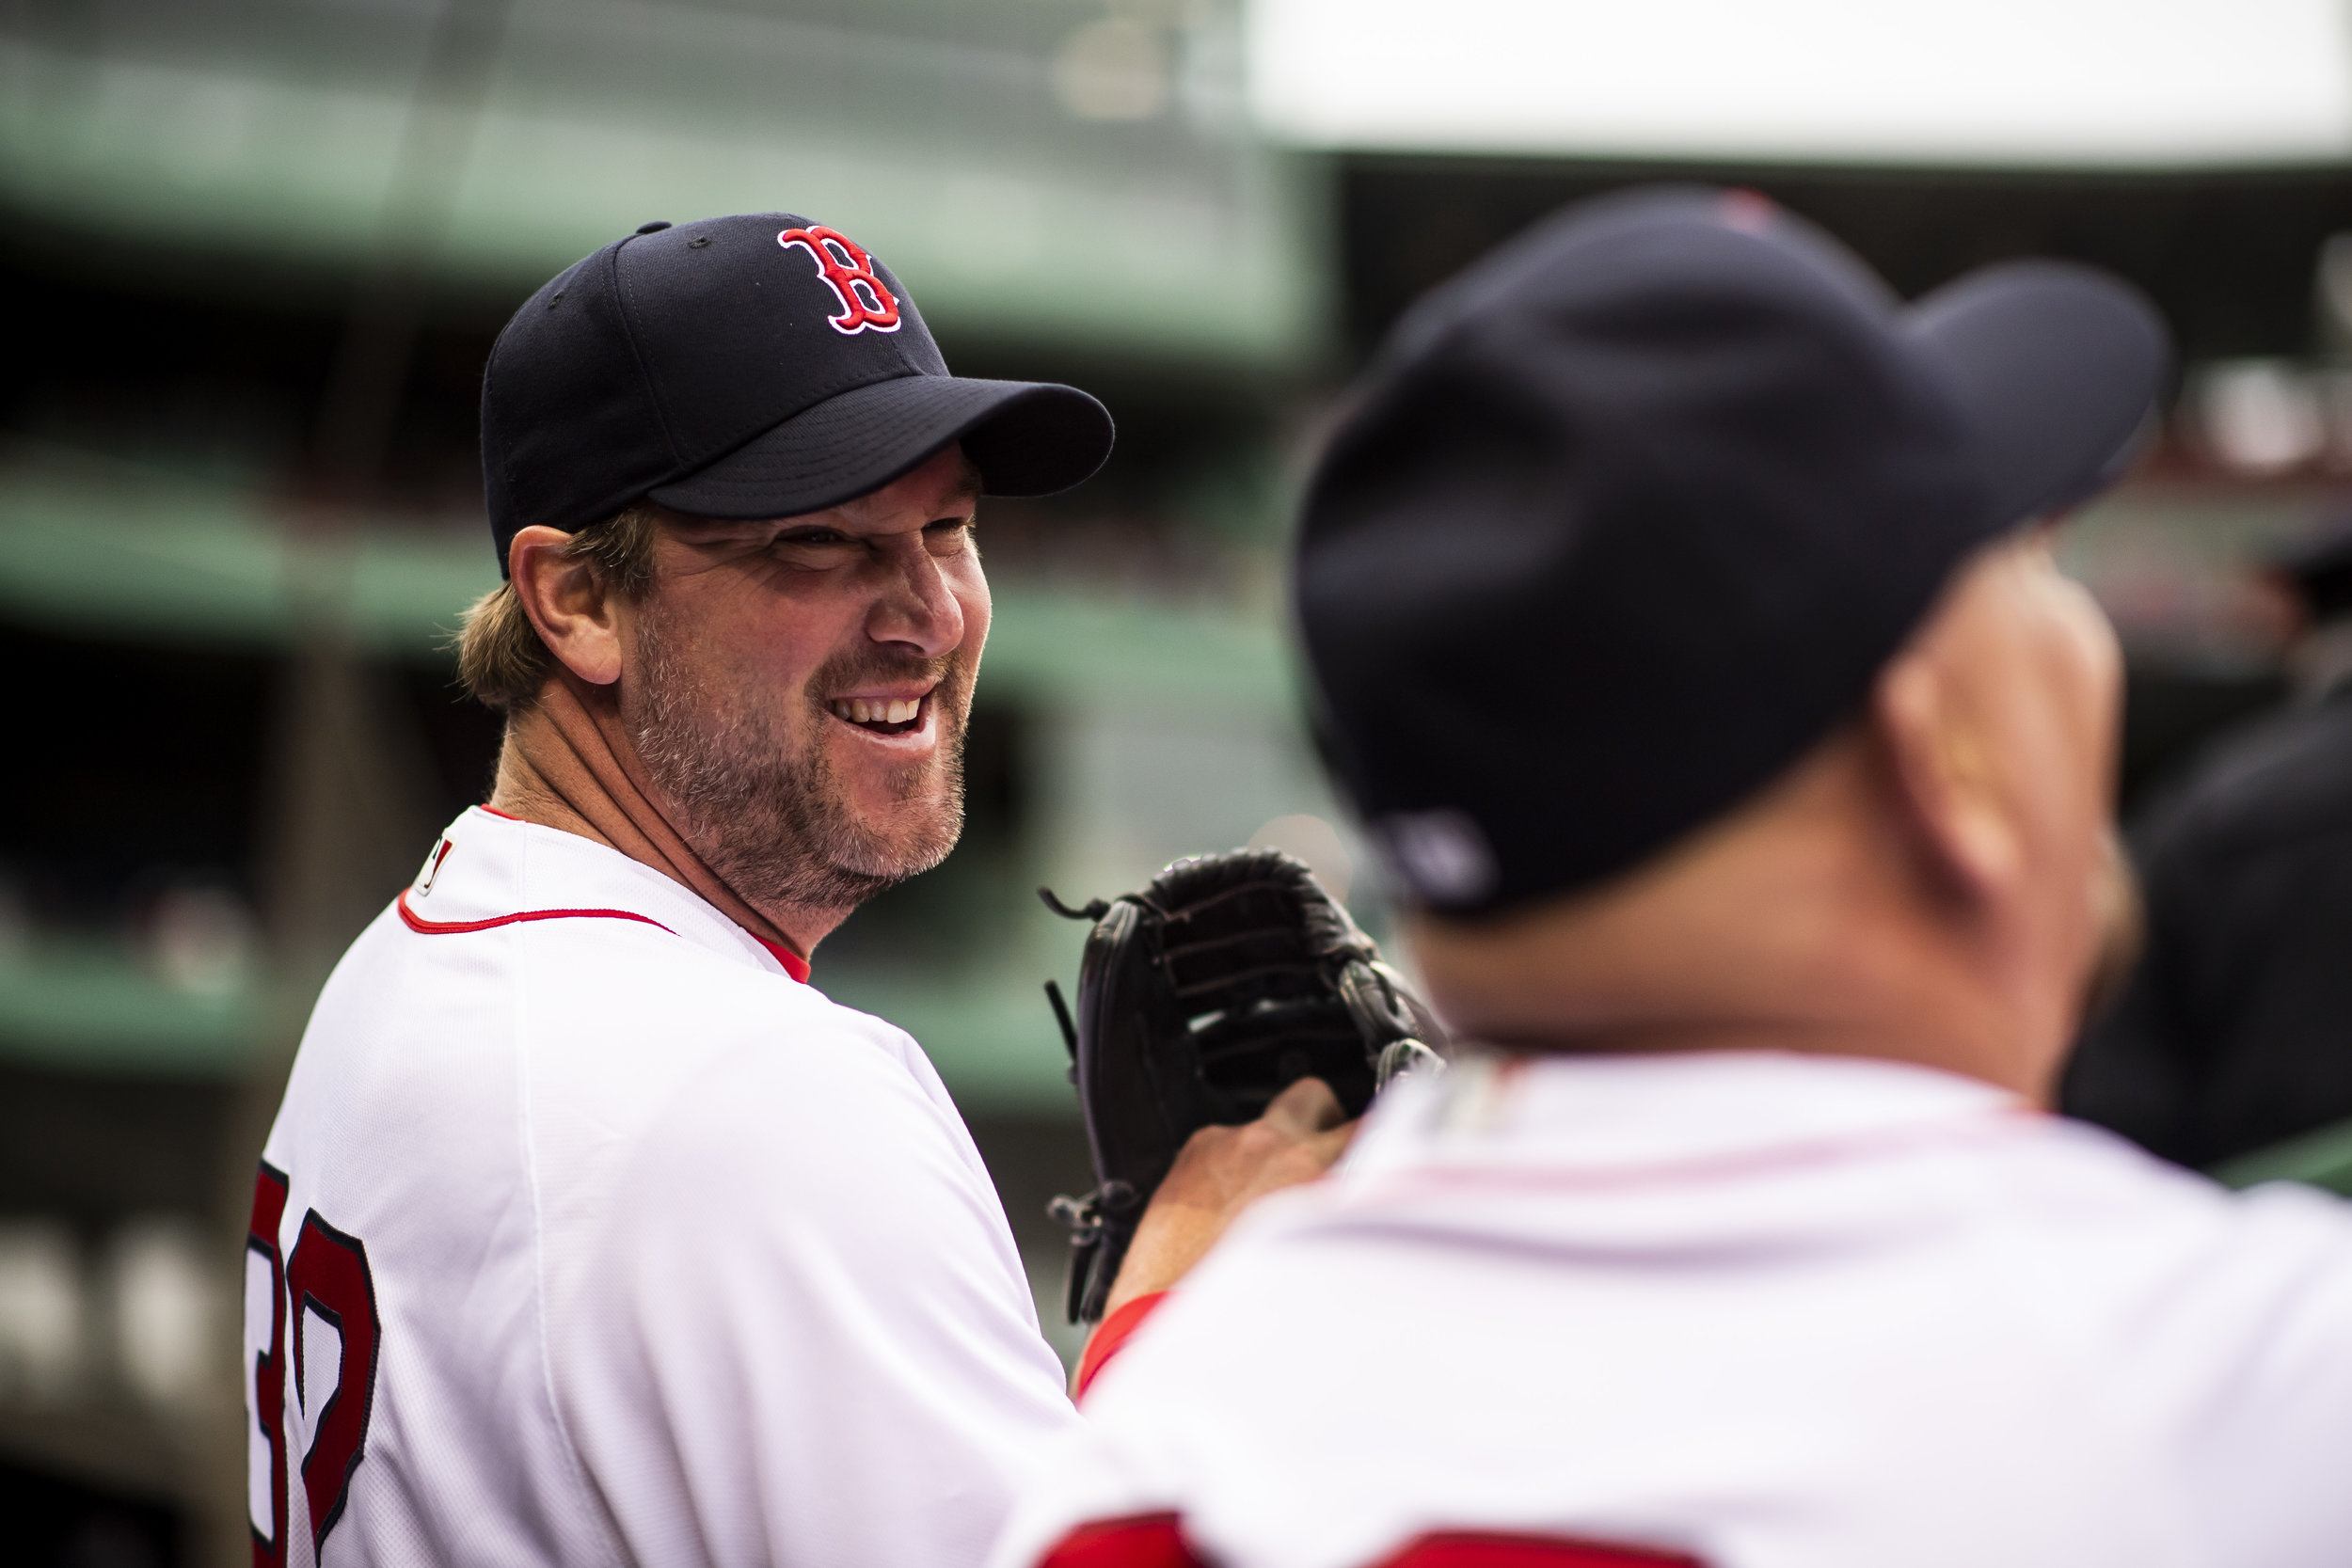 May 27, 2018, Boston, MA: Derek Lowe smiles and laughs during the Red Sox Alumni Game at Fenway Park in Boston, Massachusetts on Sunday, May 27, 2018. (Photo by Matthew Thomas/Boston Red Sox)